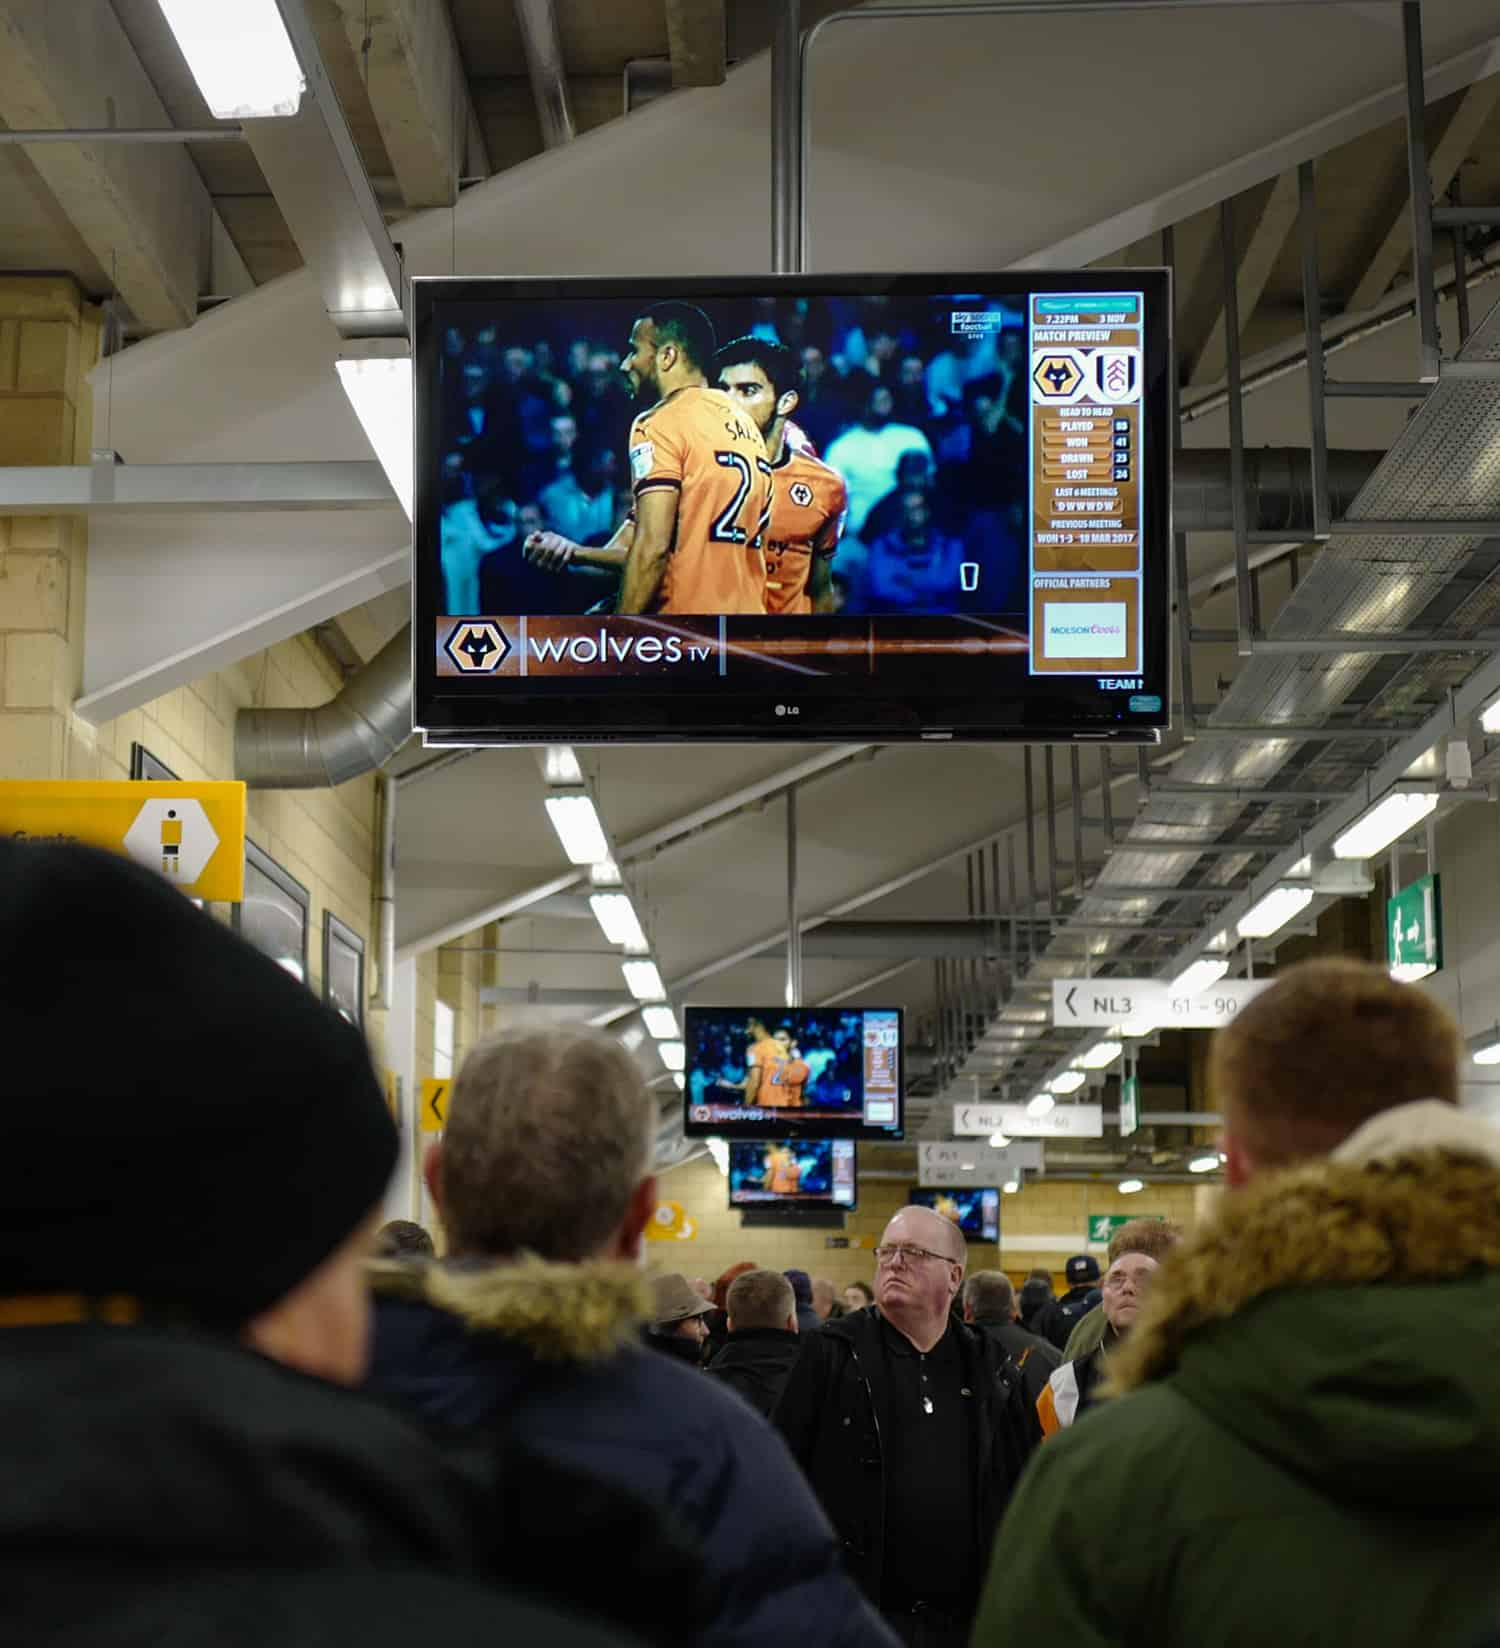 Concourse TV advertising at Molineux